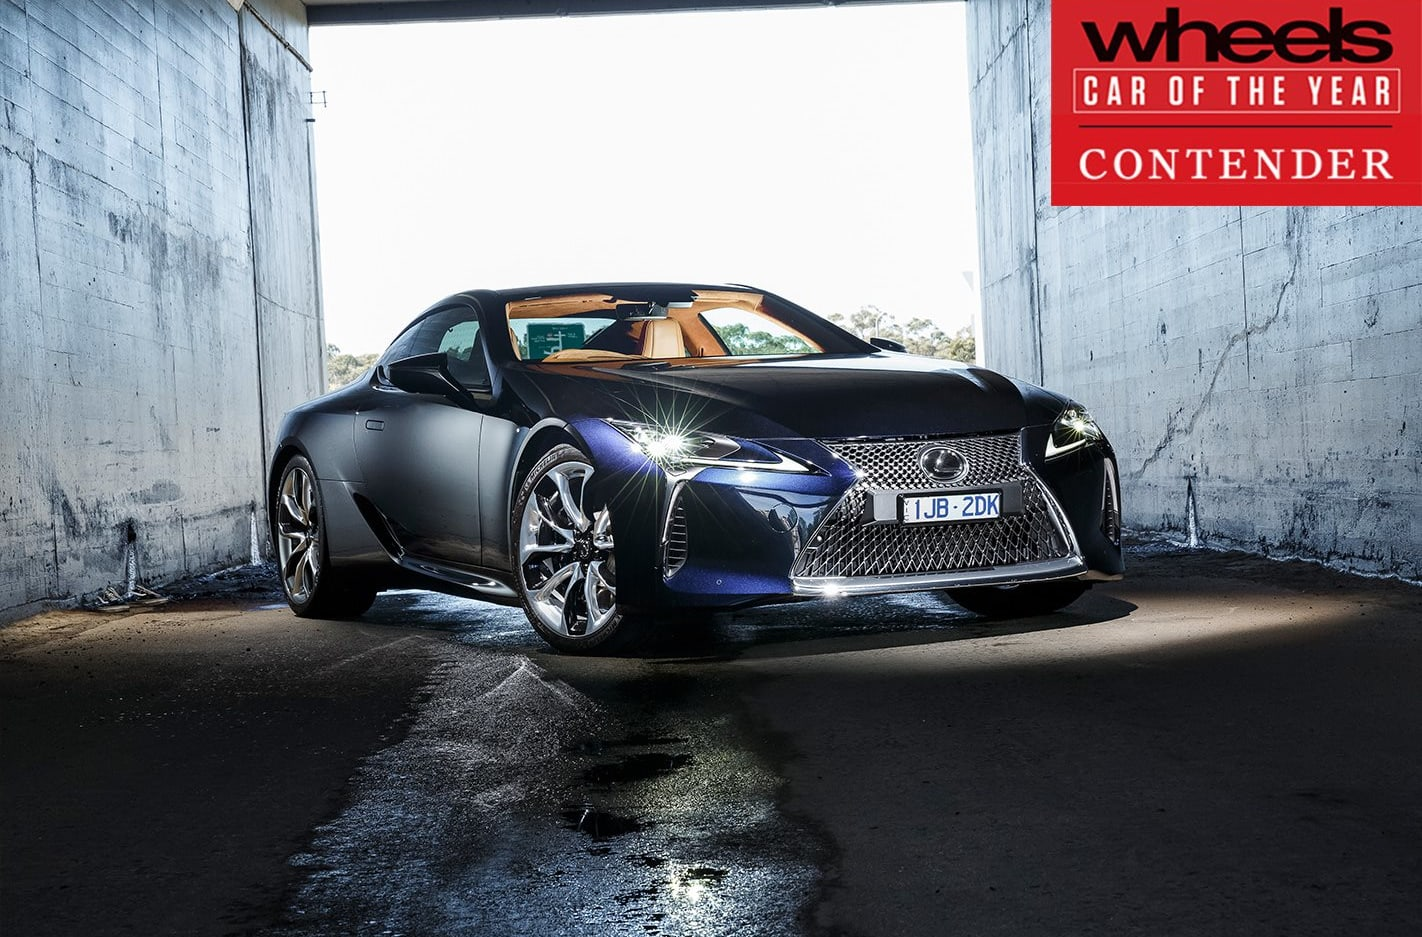 Lexus LC 2018 Car of the Year contender